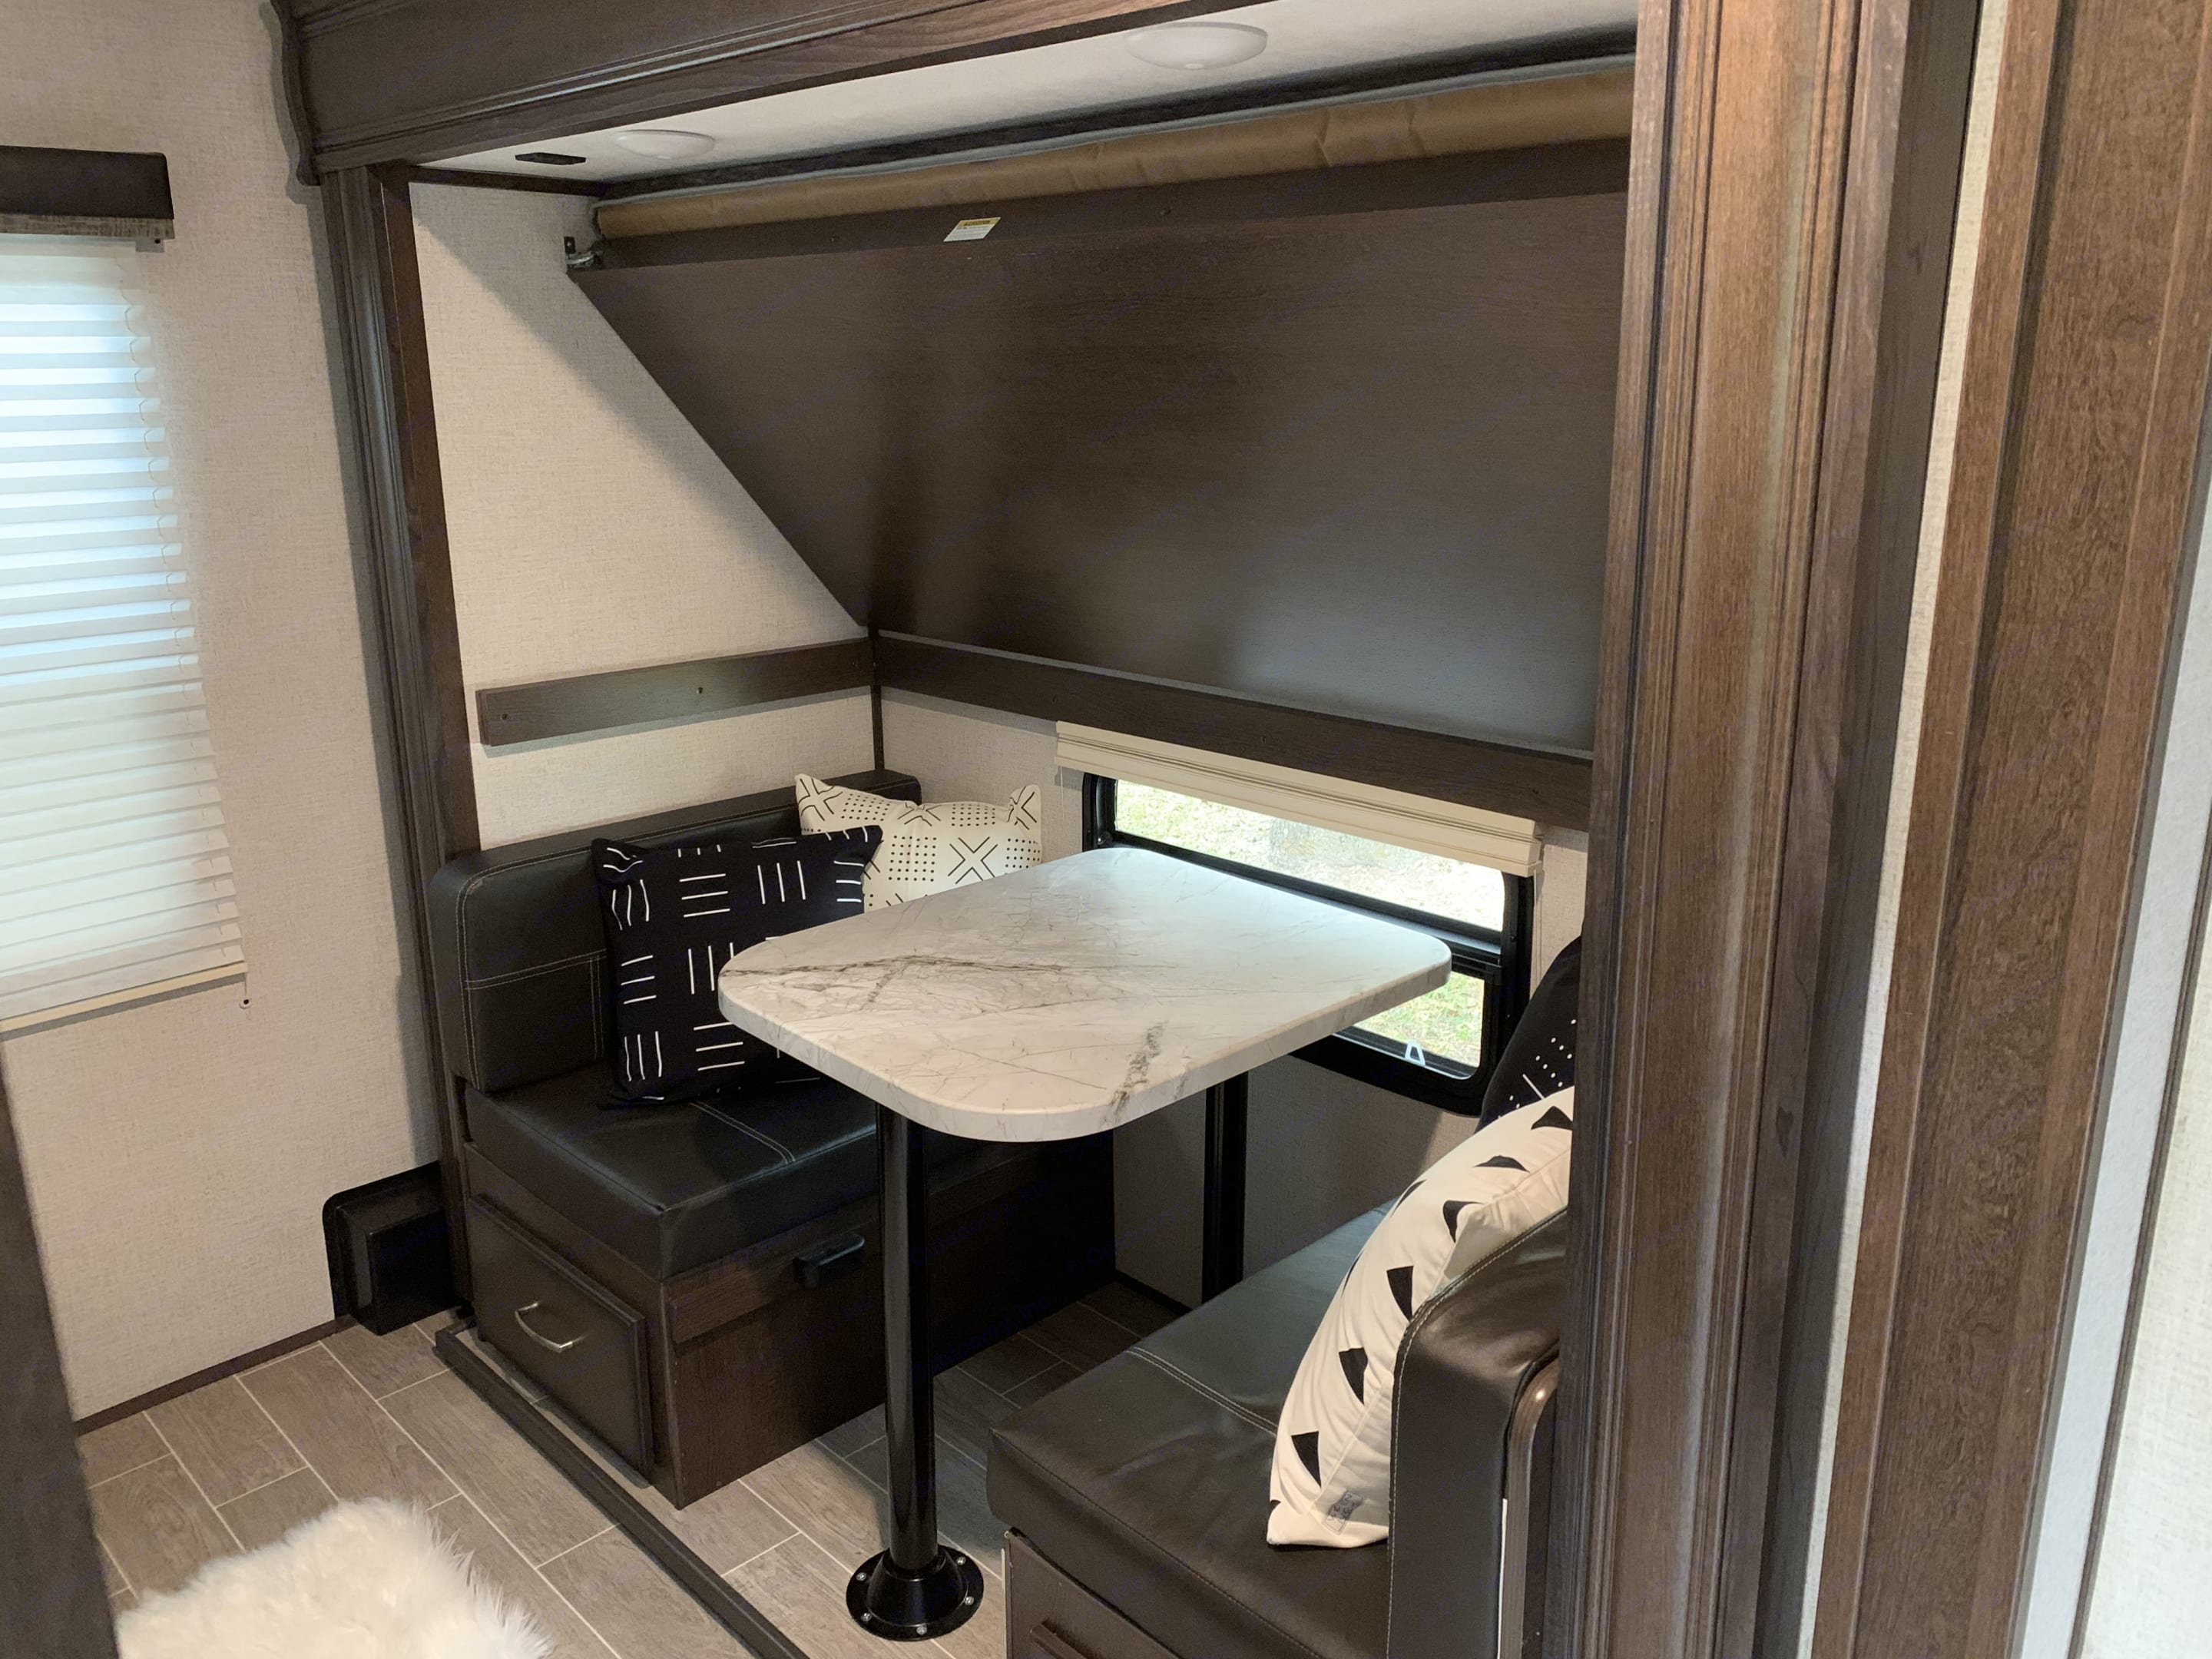 *Bunk Room* Showing Dinette with folded bunk on top. . Dutchmen Atlas 3202BH 2020